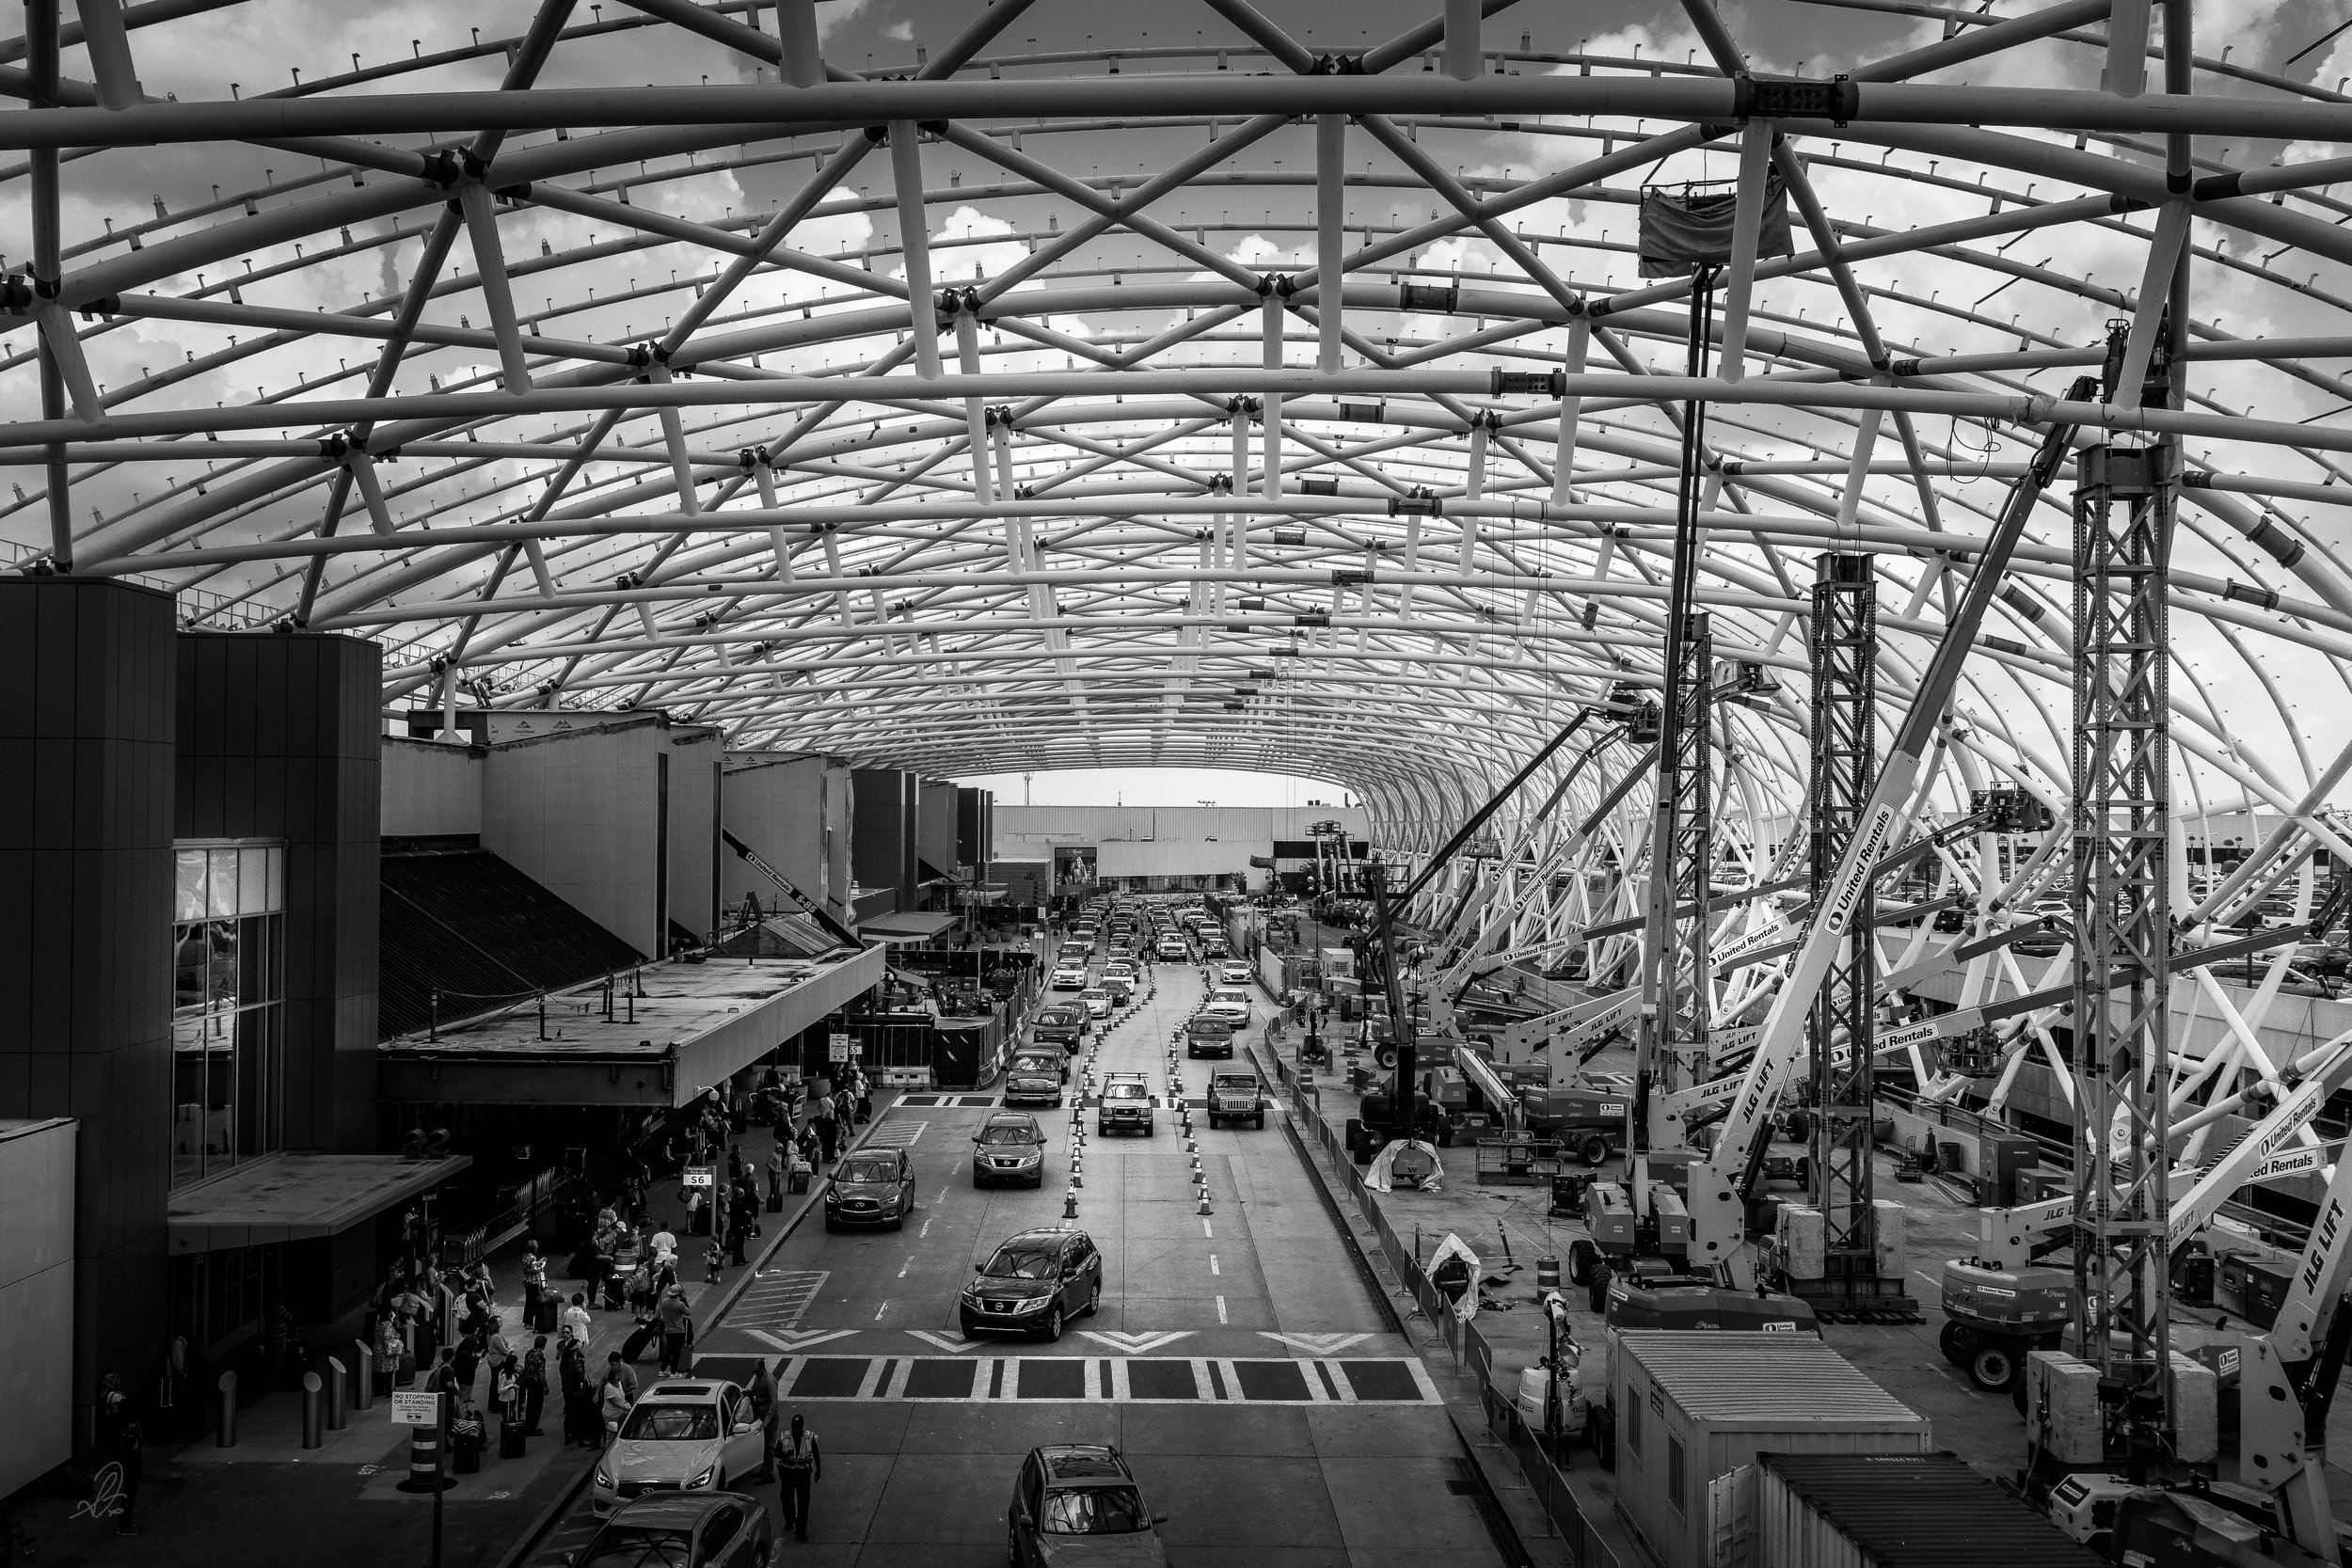 Canopy Construction at the South Terminal Passenger Drop-off